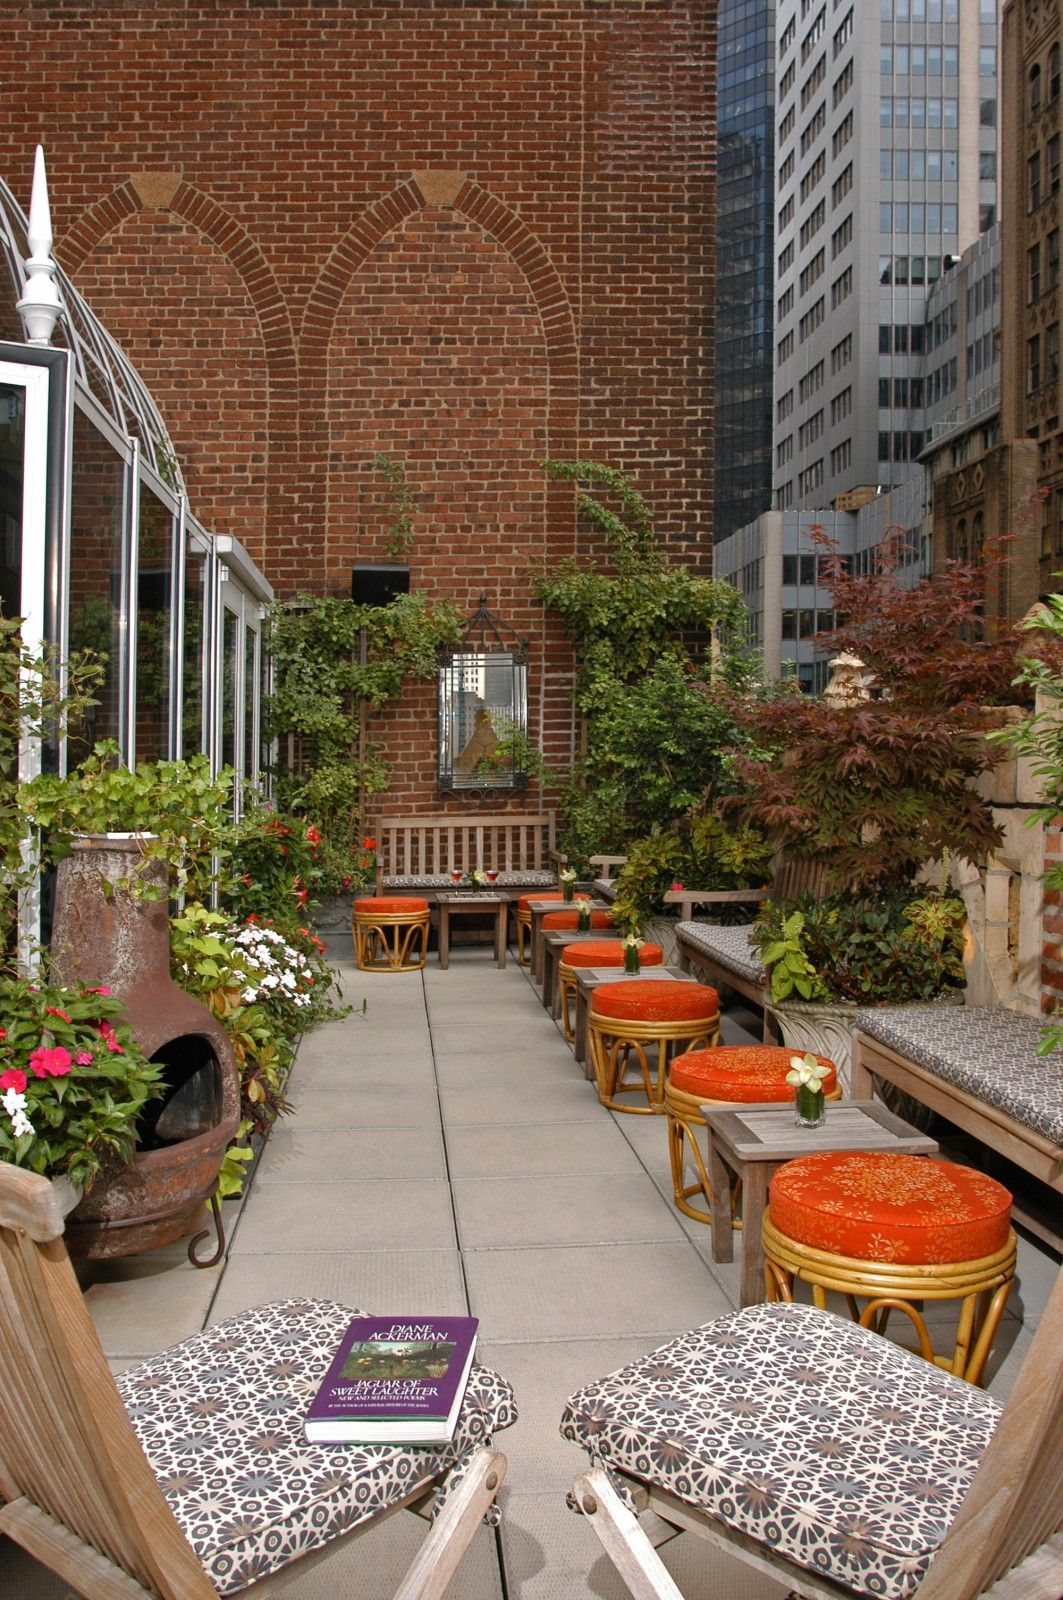 Garden Terrace Hotel: The Poetry Garden Terrace At The Library Hotel New York, A